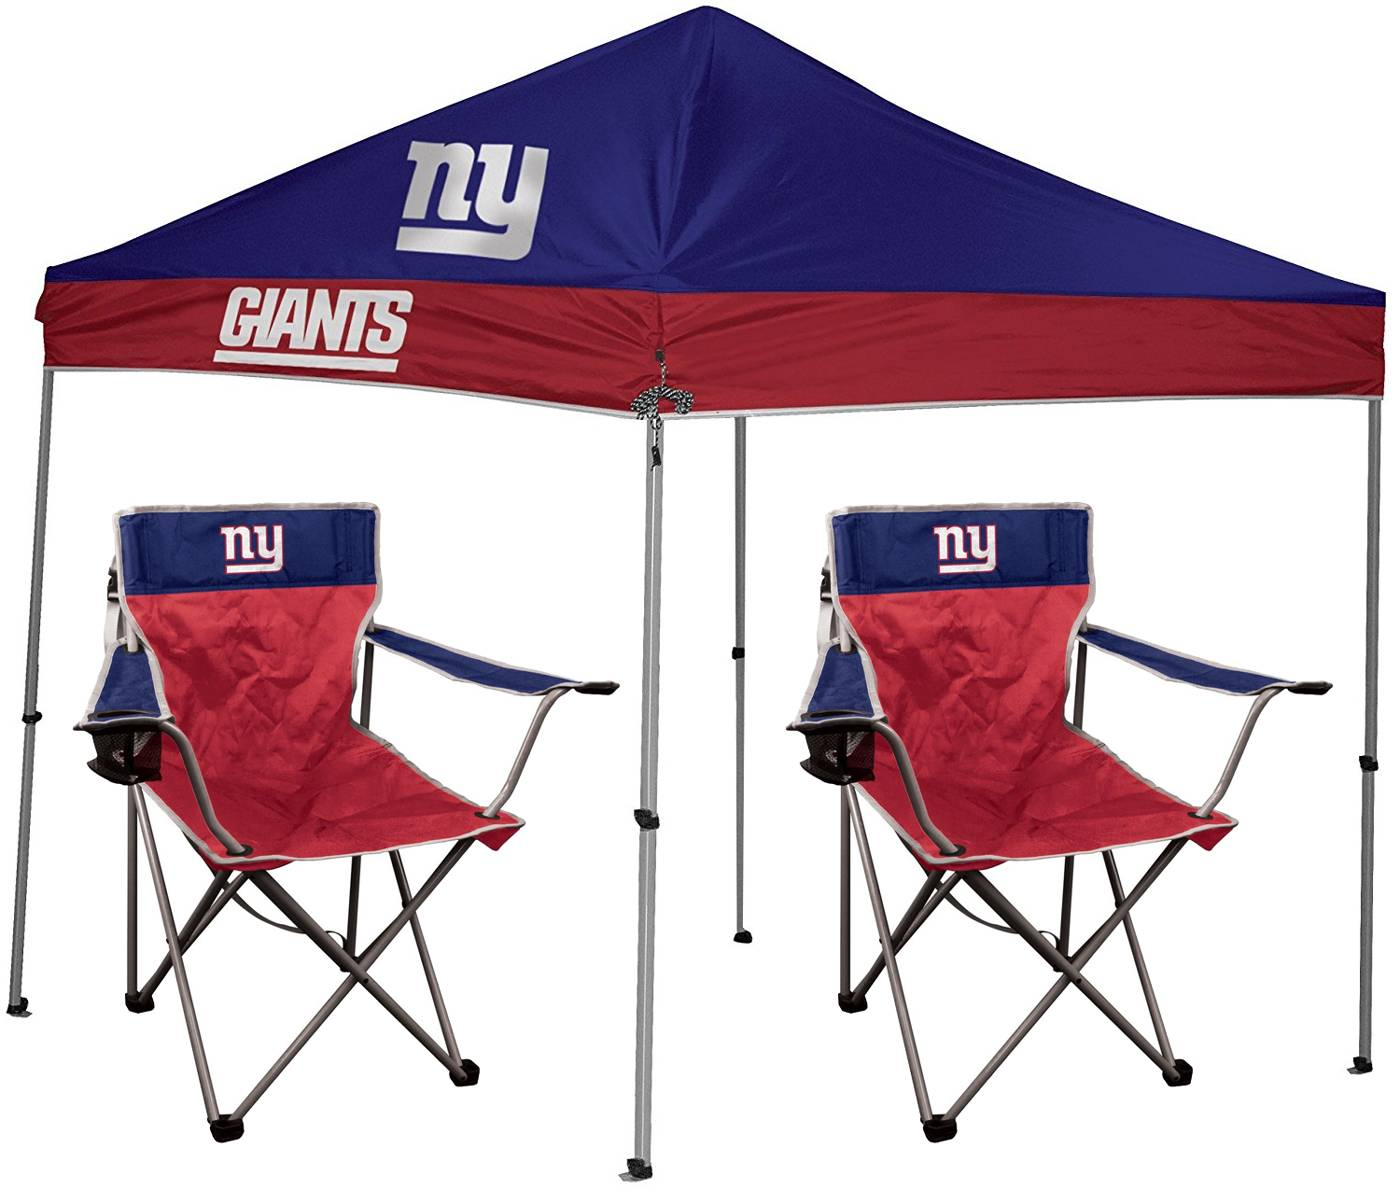 The New York Giants Rawlings Canopy Tent u0026 Chair Set is the perfect starter set to host your first tailgate! Included in this package is a 9u0027 x 9u0027 canopy ...  sc 1 st  Sports Unlimited & New York Giants Rawlings Canopy Tent u0026 Chair Set